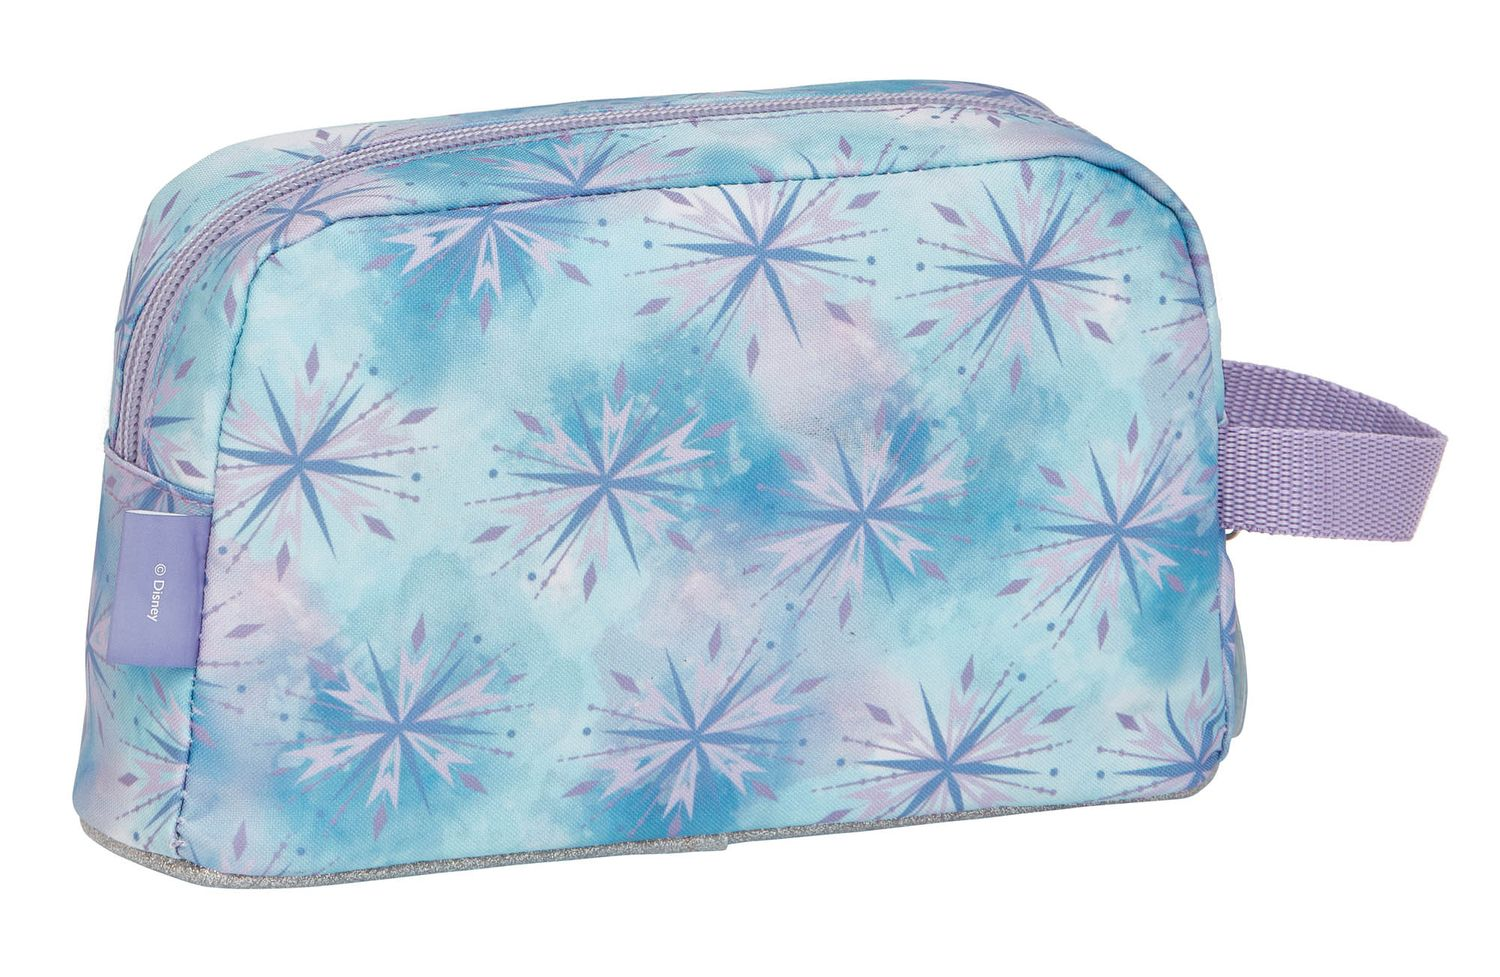 Disney Frozen 2 Cooler Lunch Bag – image 2